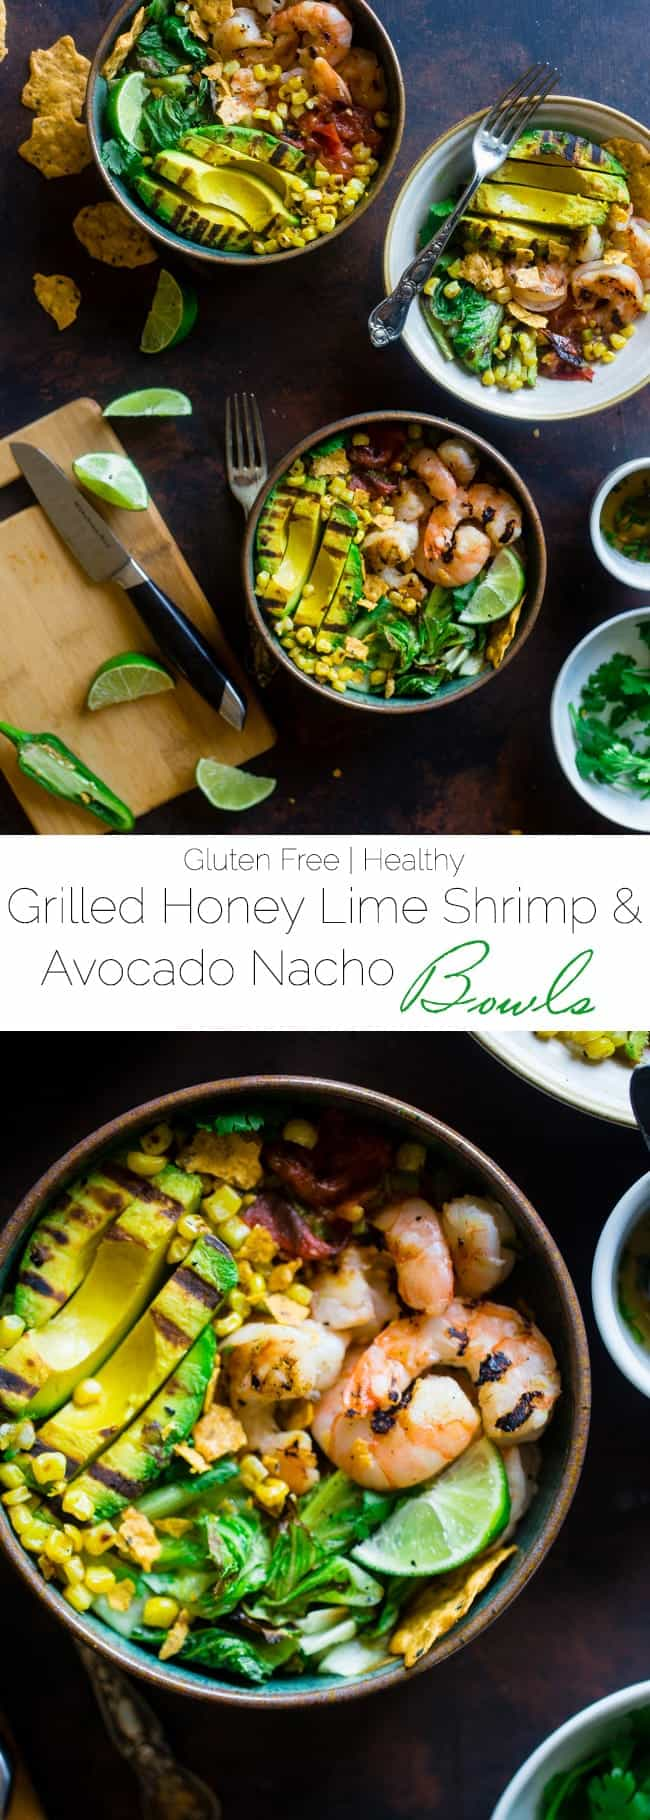 Honey Lime Grilled Avocado Shrimp Nacho Bowls - These smoky-sweet bowls have glazed honey lime grilled avocado, spicy shrimp. tomato and corn! Top them with gluten free nacho chips for a healthy, summer meal that's packed with flavor! | Foodfaithfitness.com | @FoodFaithFit